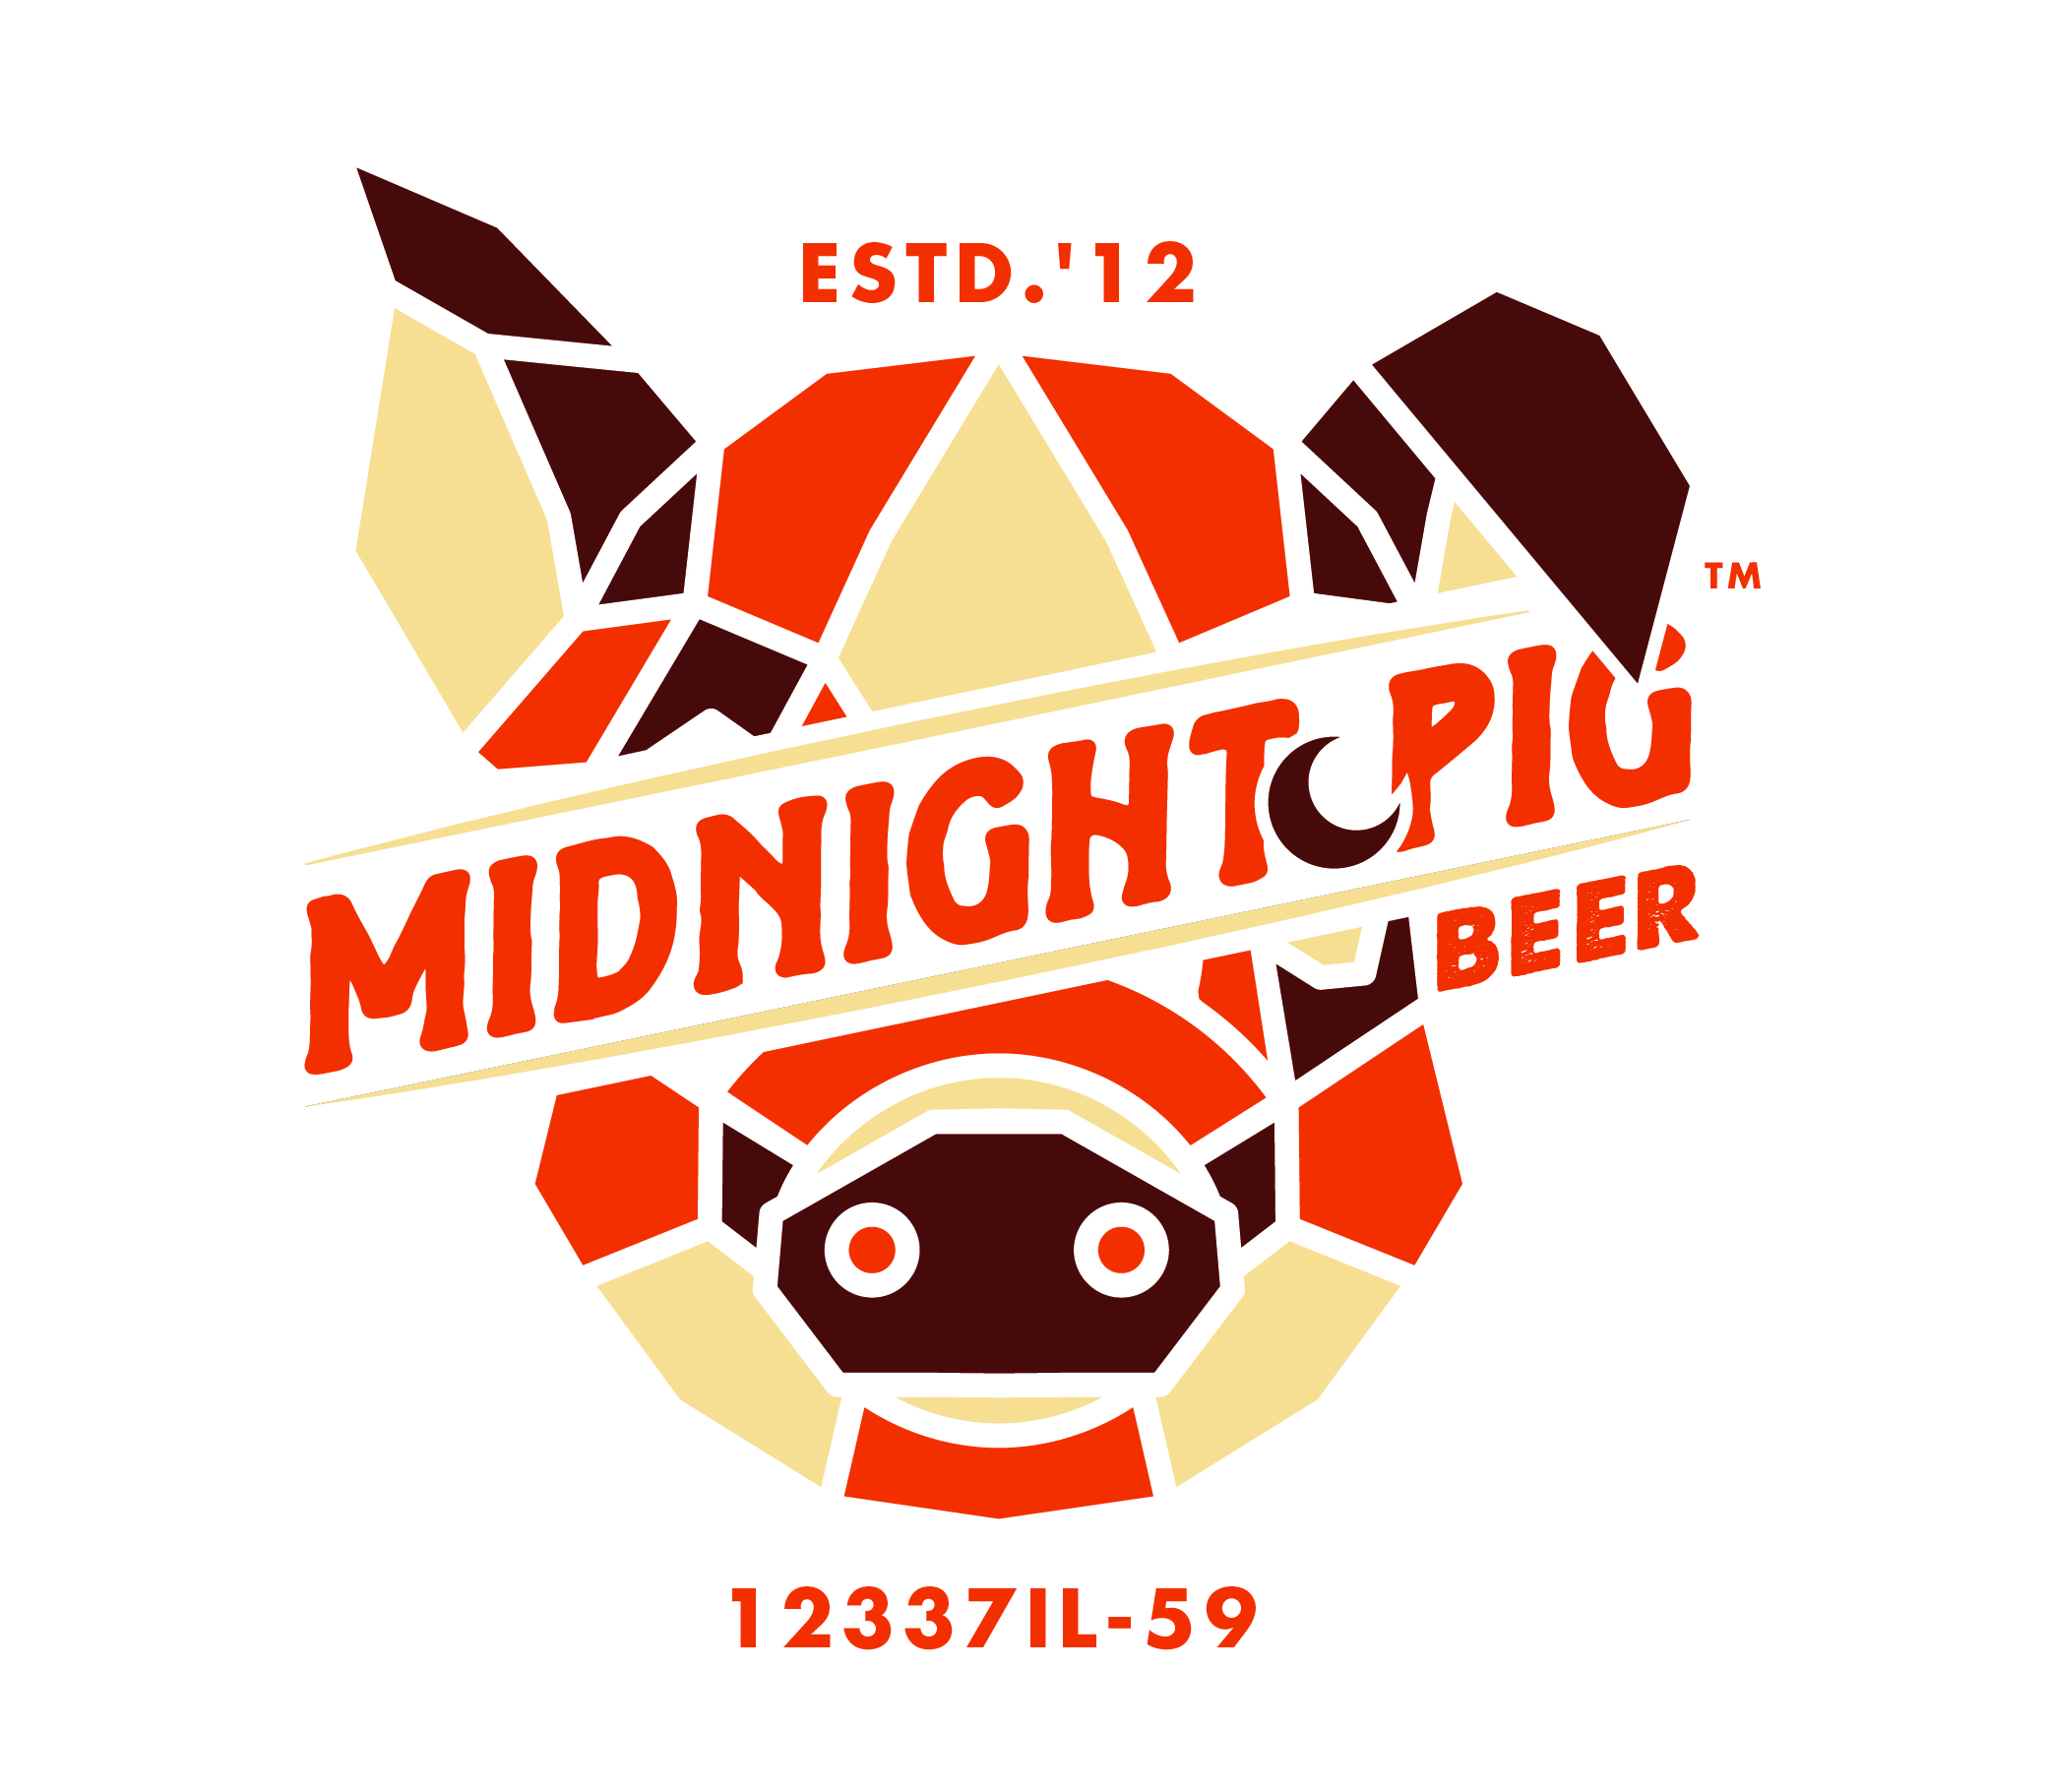 Midnight pig master brand identity head1 10.19.17